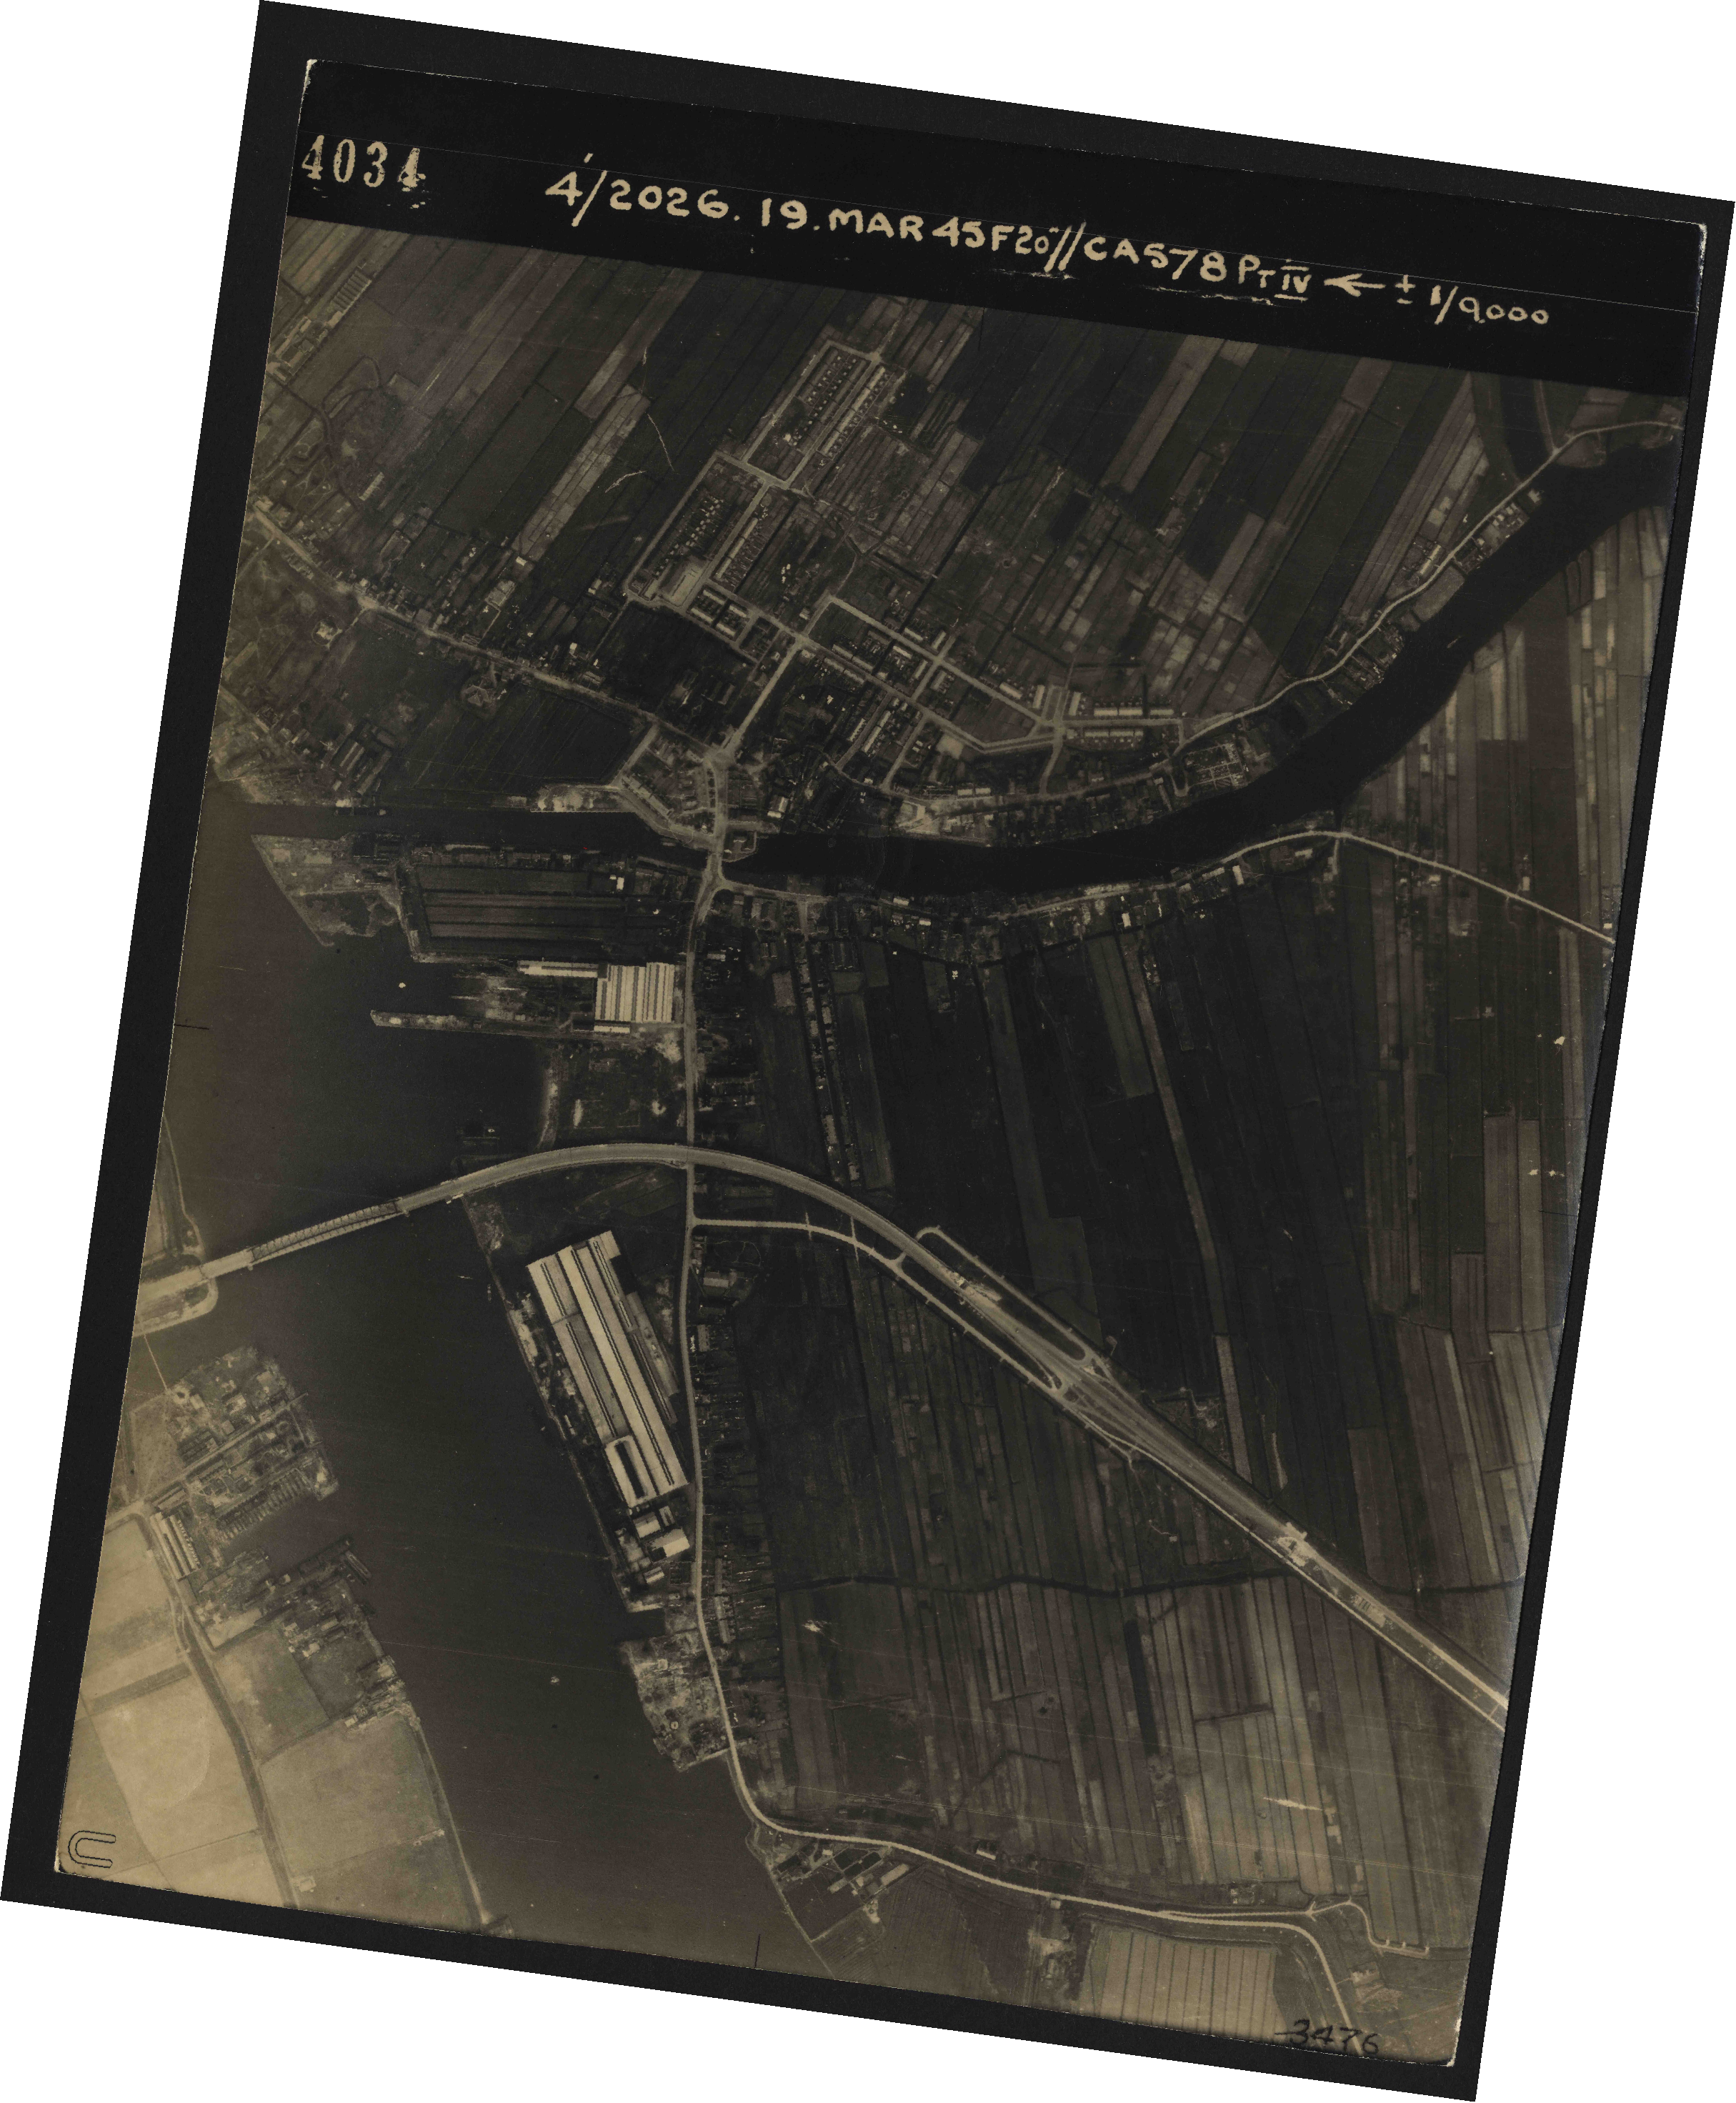 Collection RAF aerial photos 1940-1945 - flight 012, run 02, photo 4034